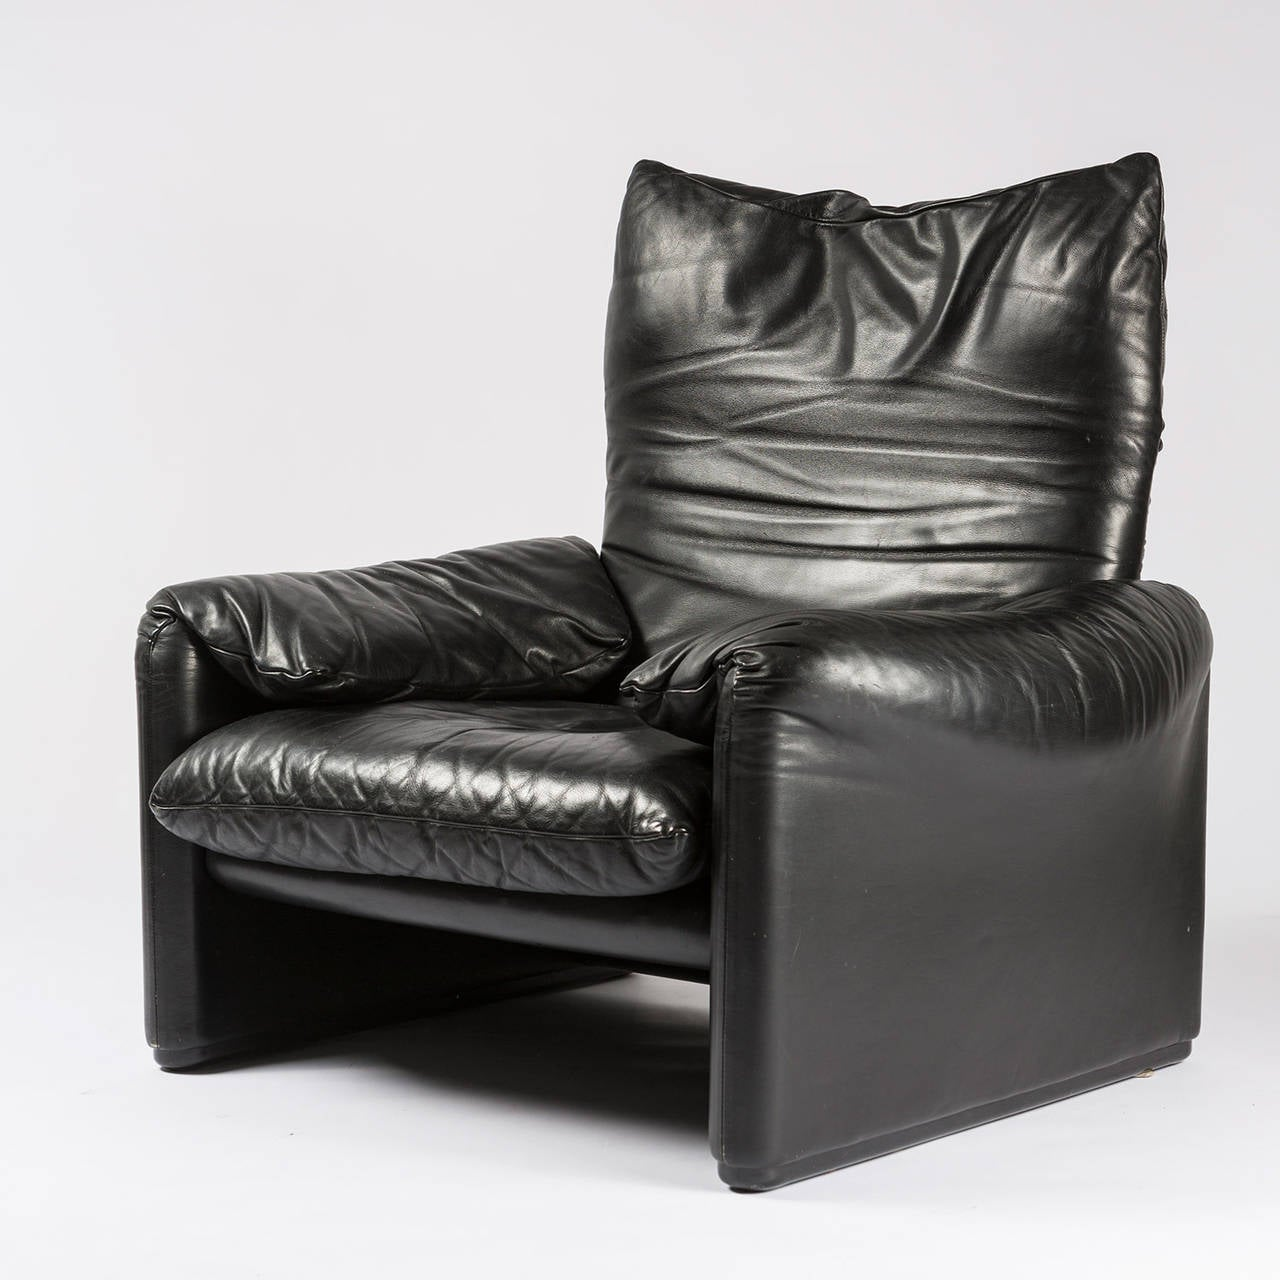 maralunga lounge chair by vico magistretti for cassina for sale at 1stdibs. Black Bedroom Furniture Sets. Home Design Ideas